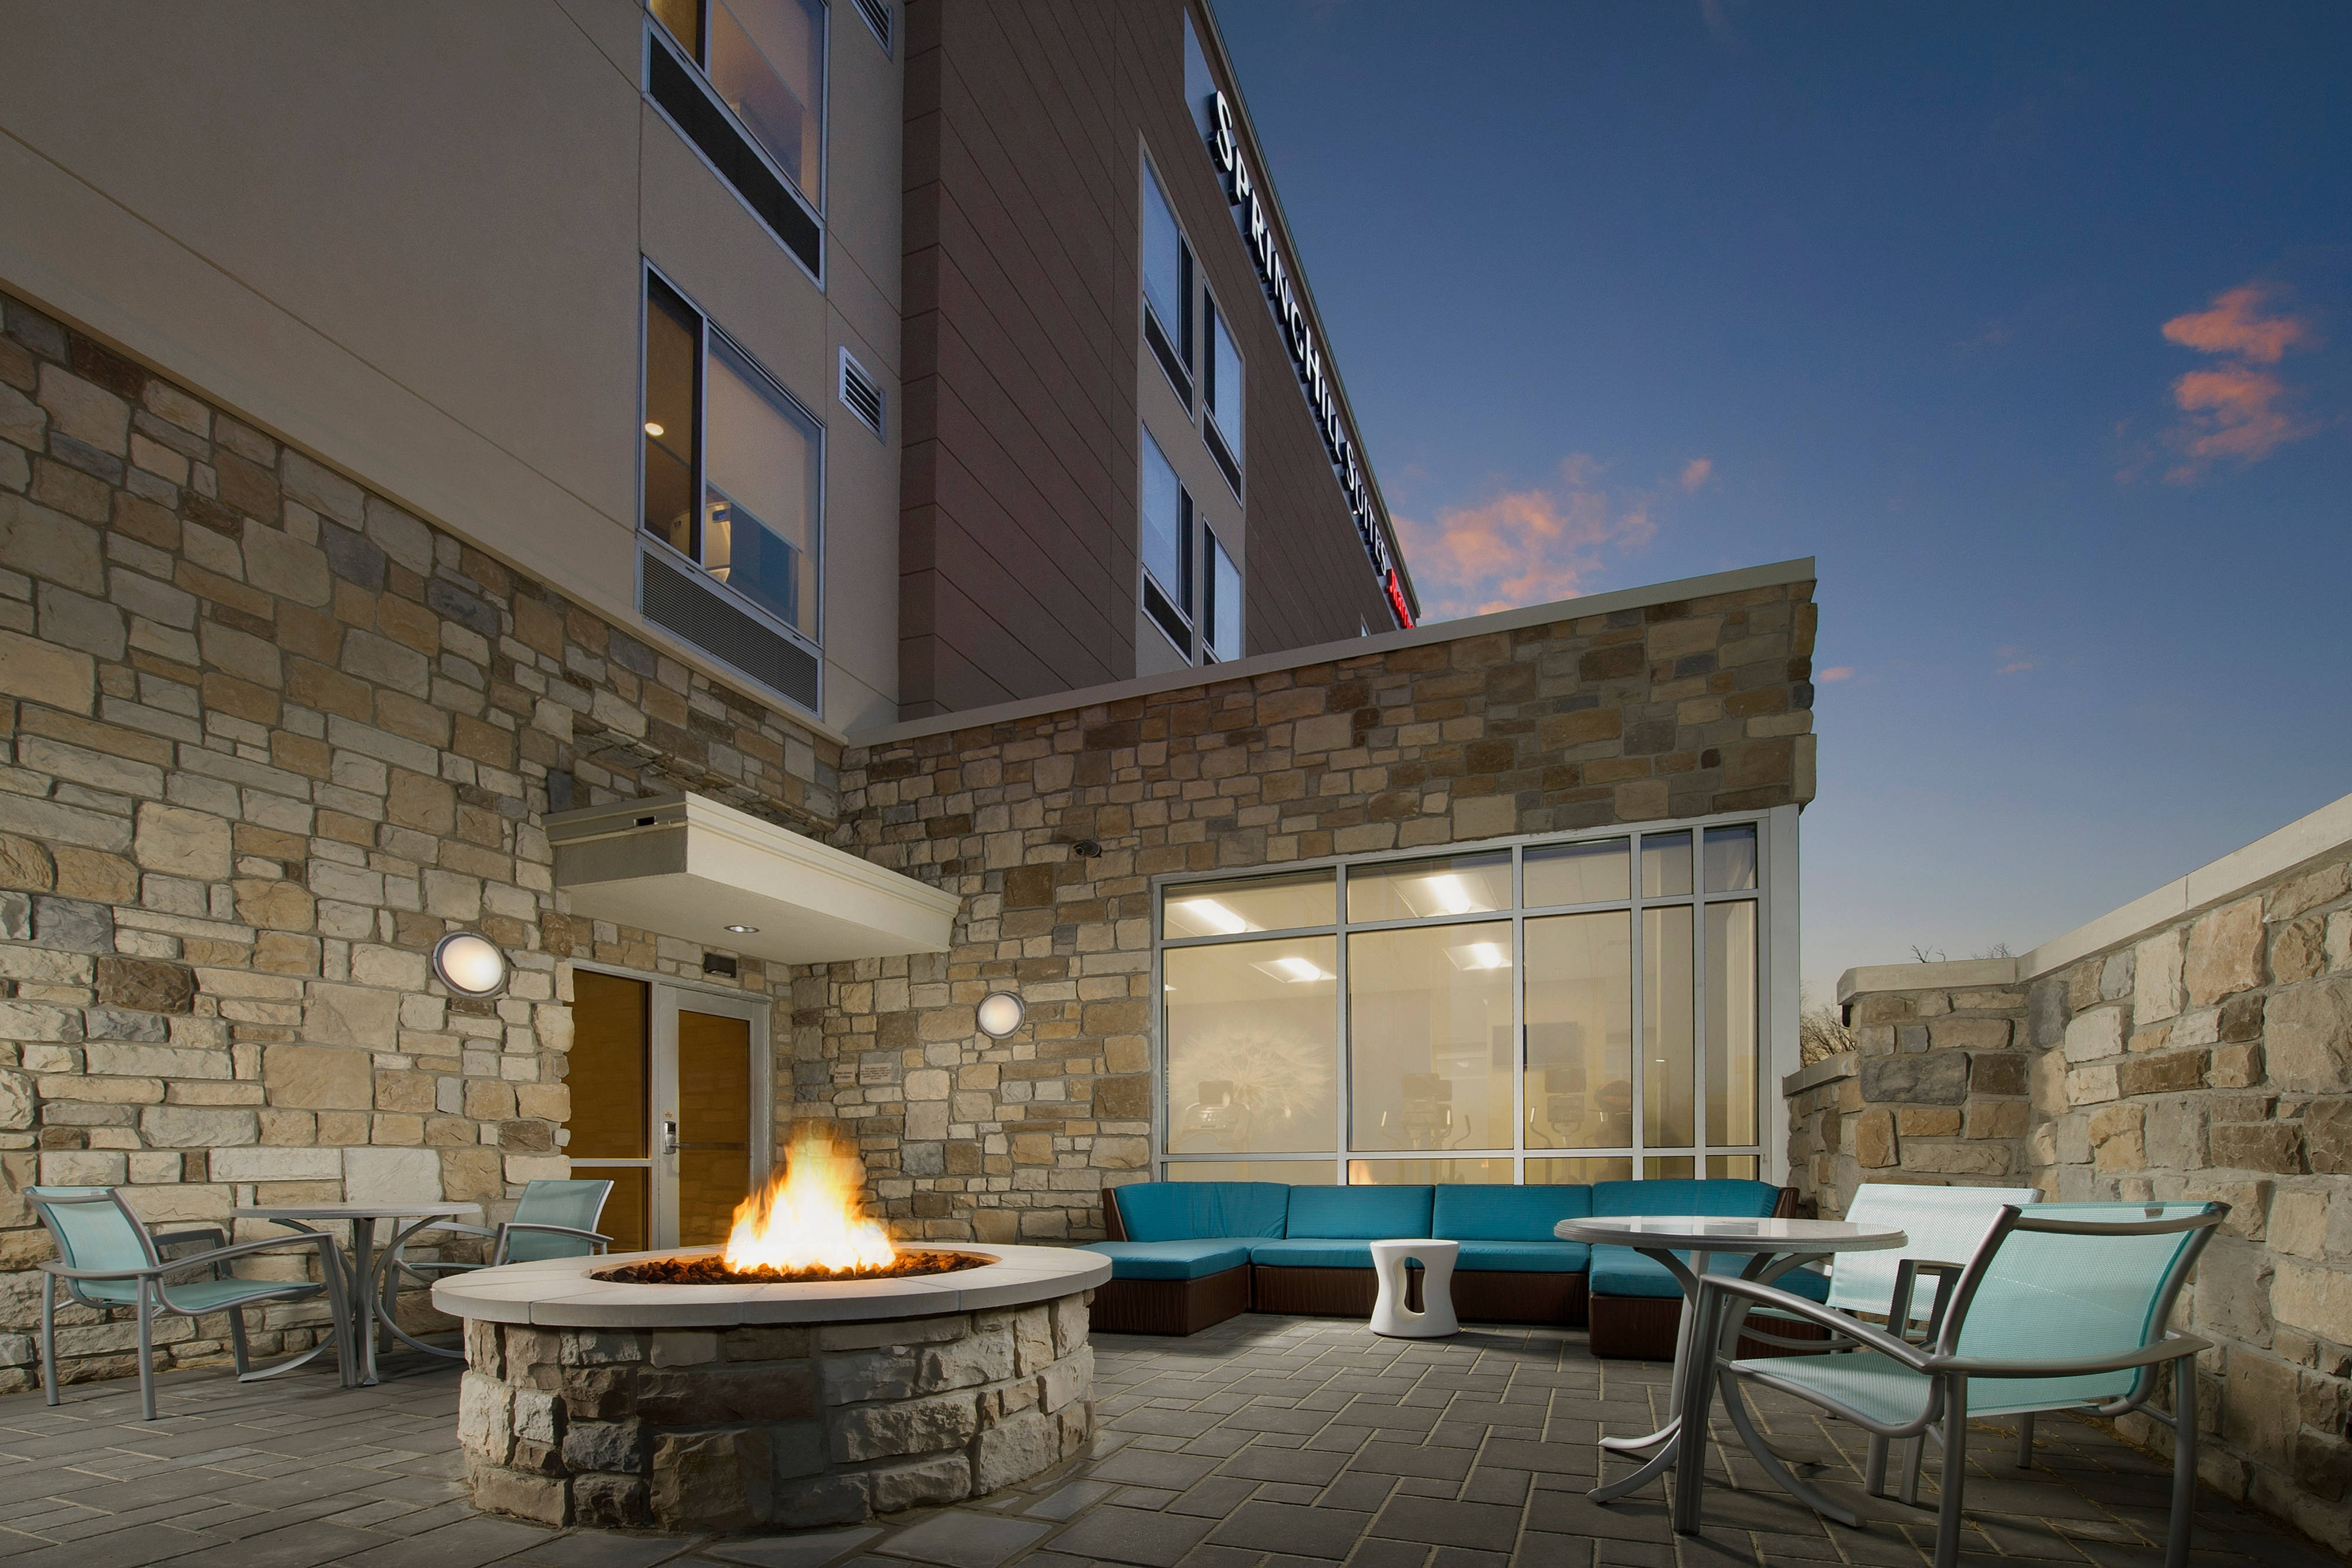 Outdoor Patio SpringHill Suites Bridgeport